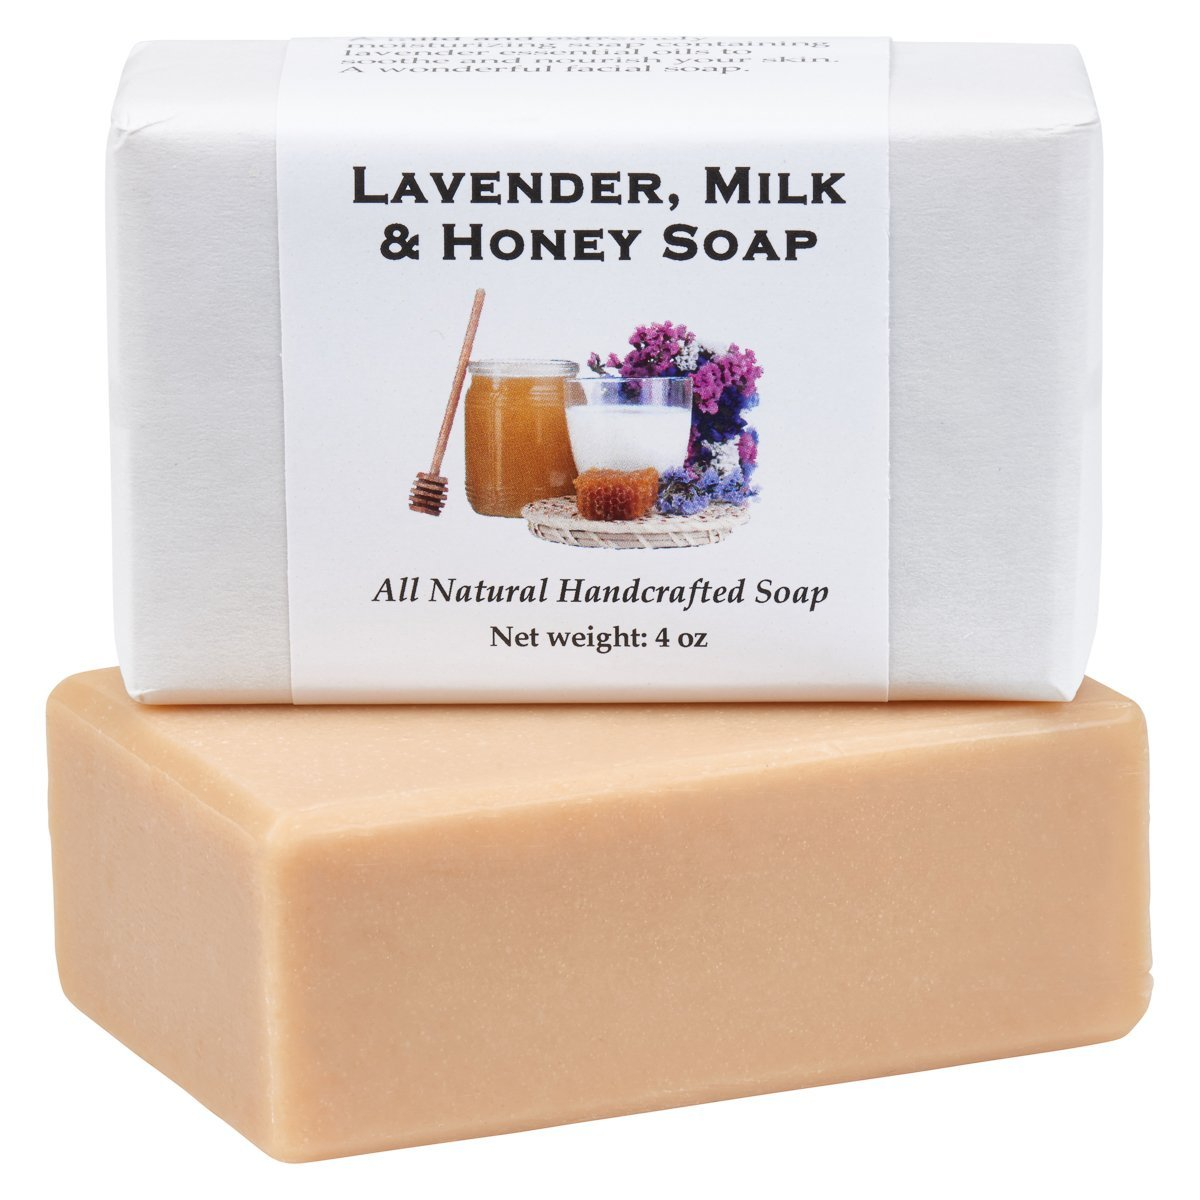 Lavender Milk and Honey Soap by MoonDance Soaps - Handmade Soap with Goat Milk and Lavender Essential Oil